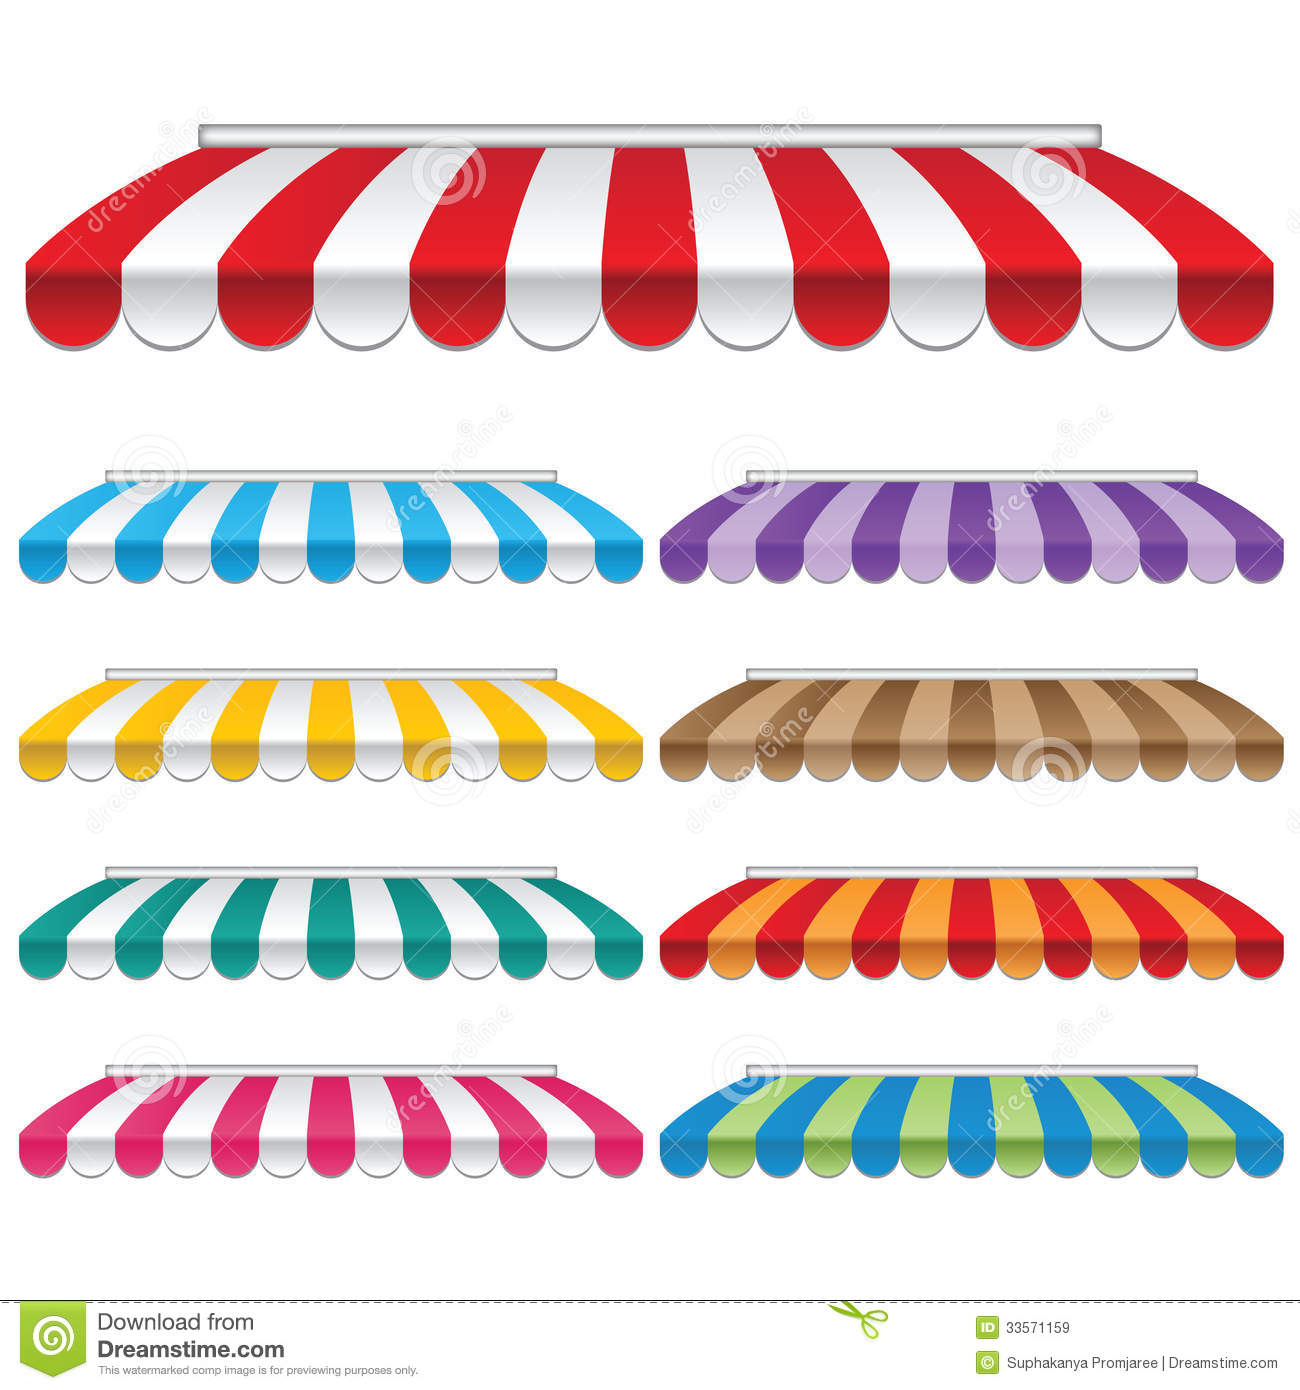 Awning clipart #3, Download drawings